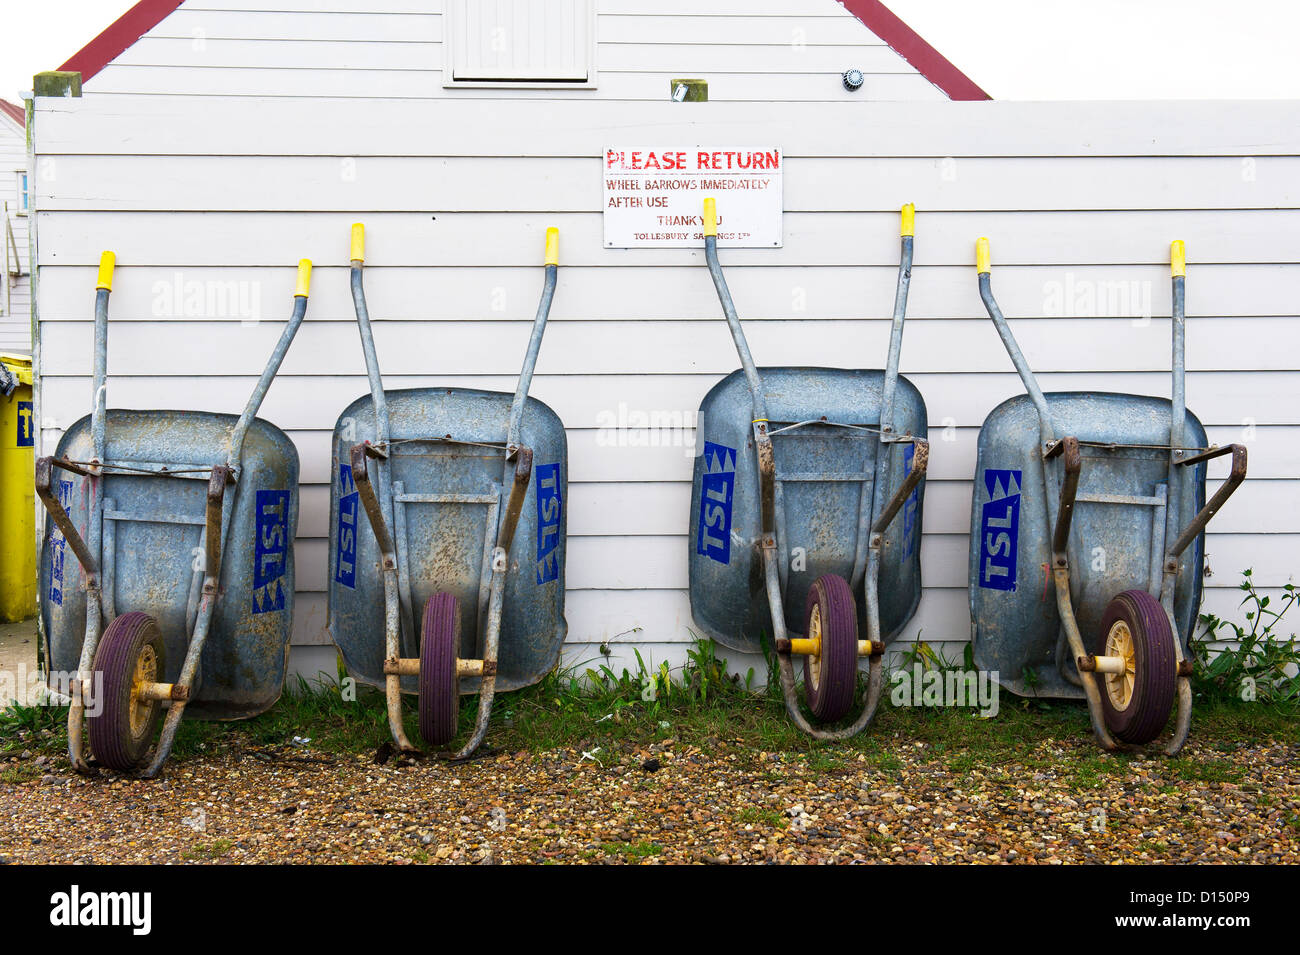 Wheelbarrows leaning against a wooden fence at Tollesbury Saltings. - Stock Image